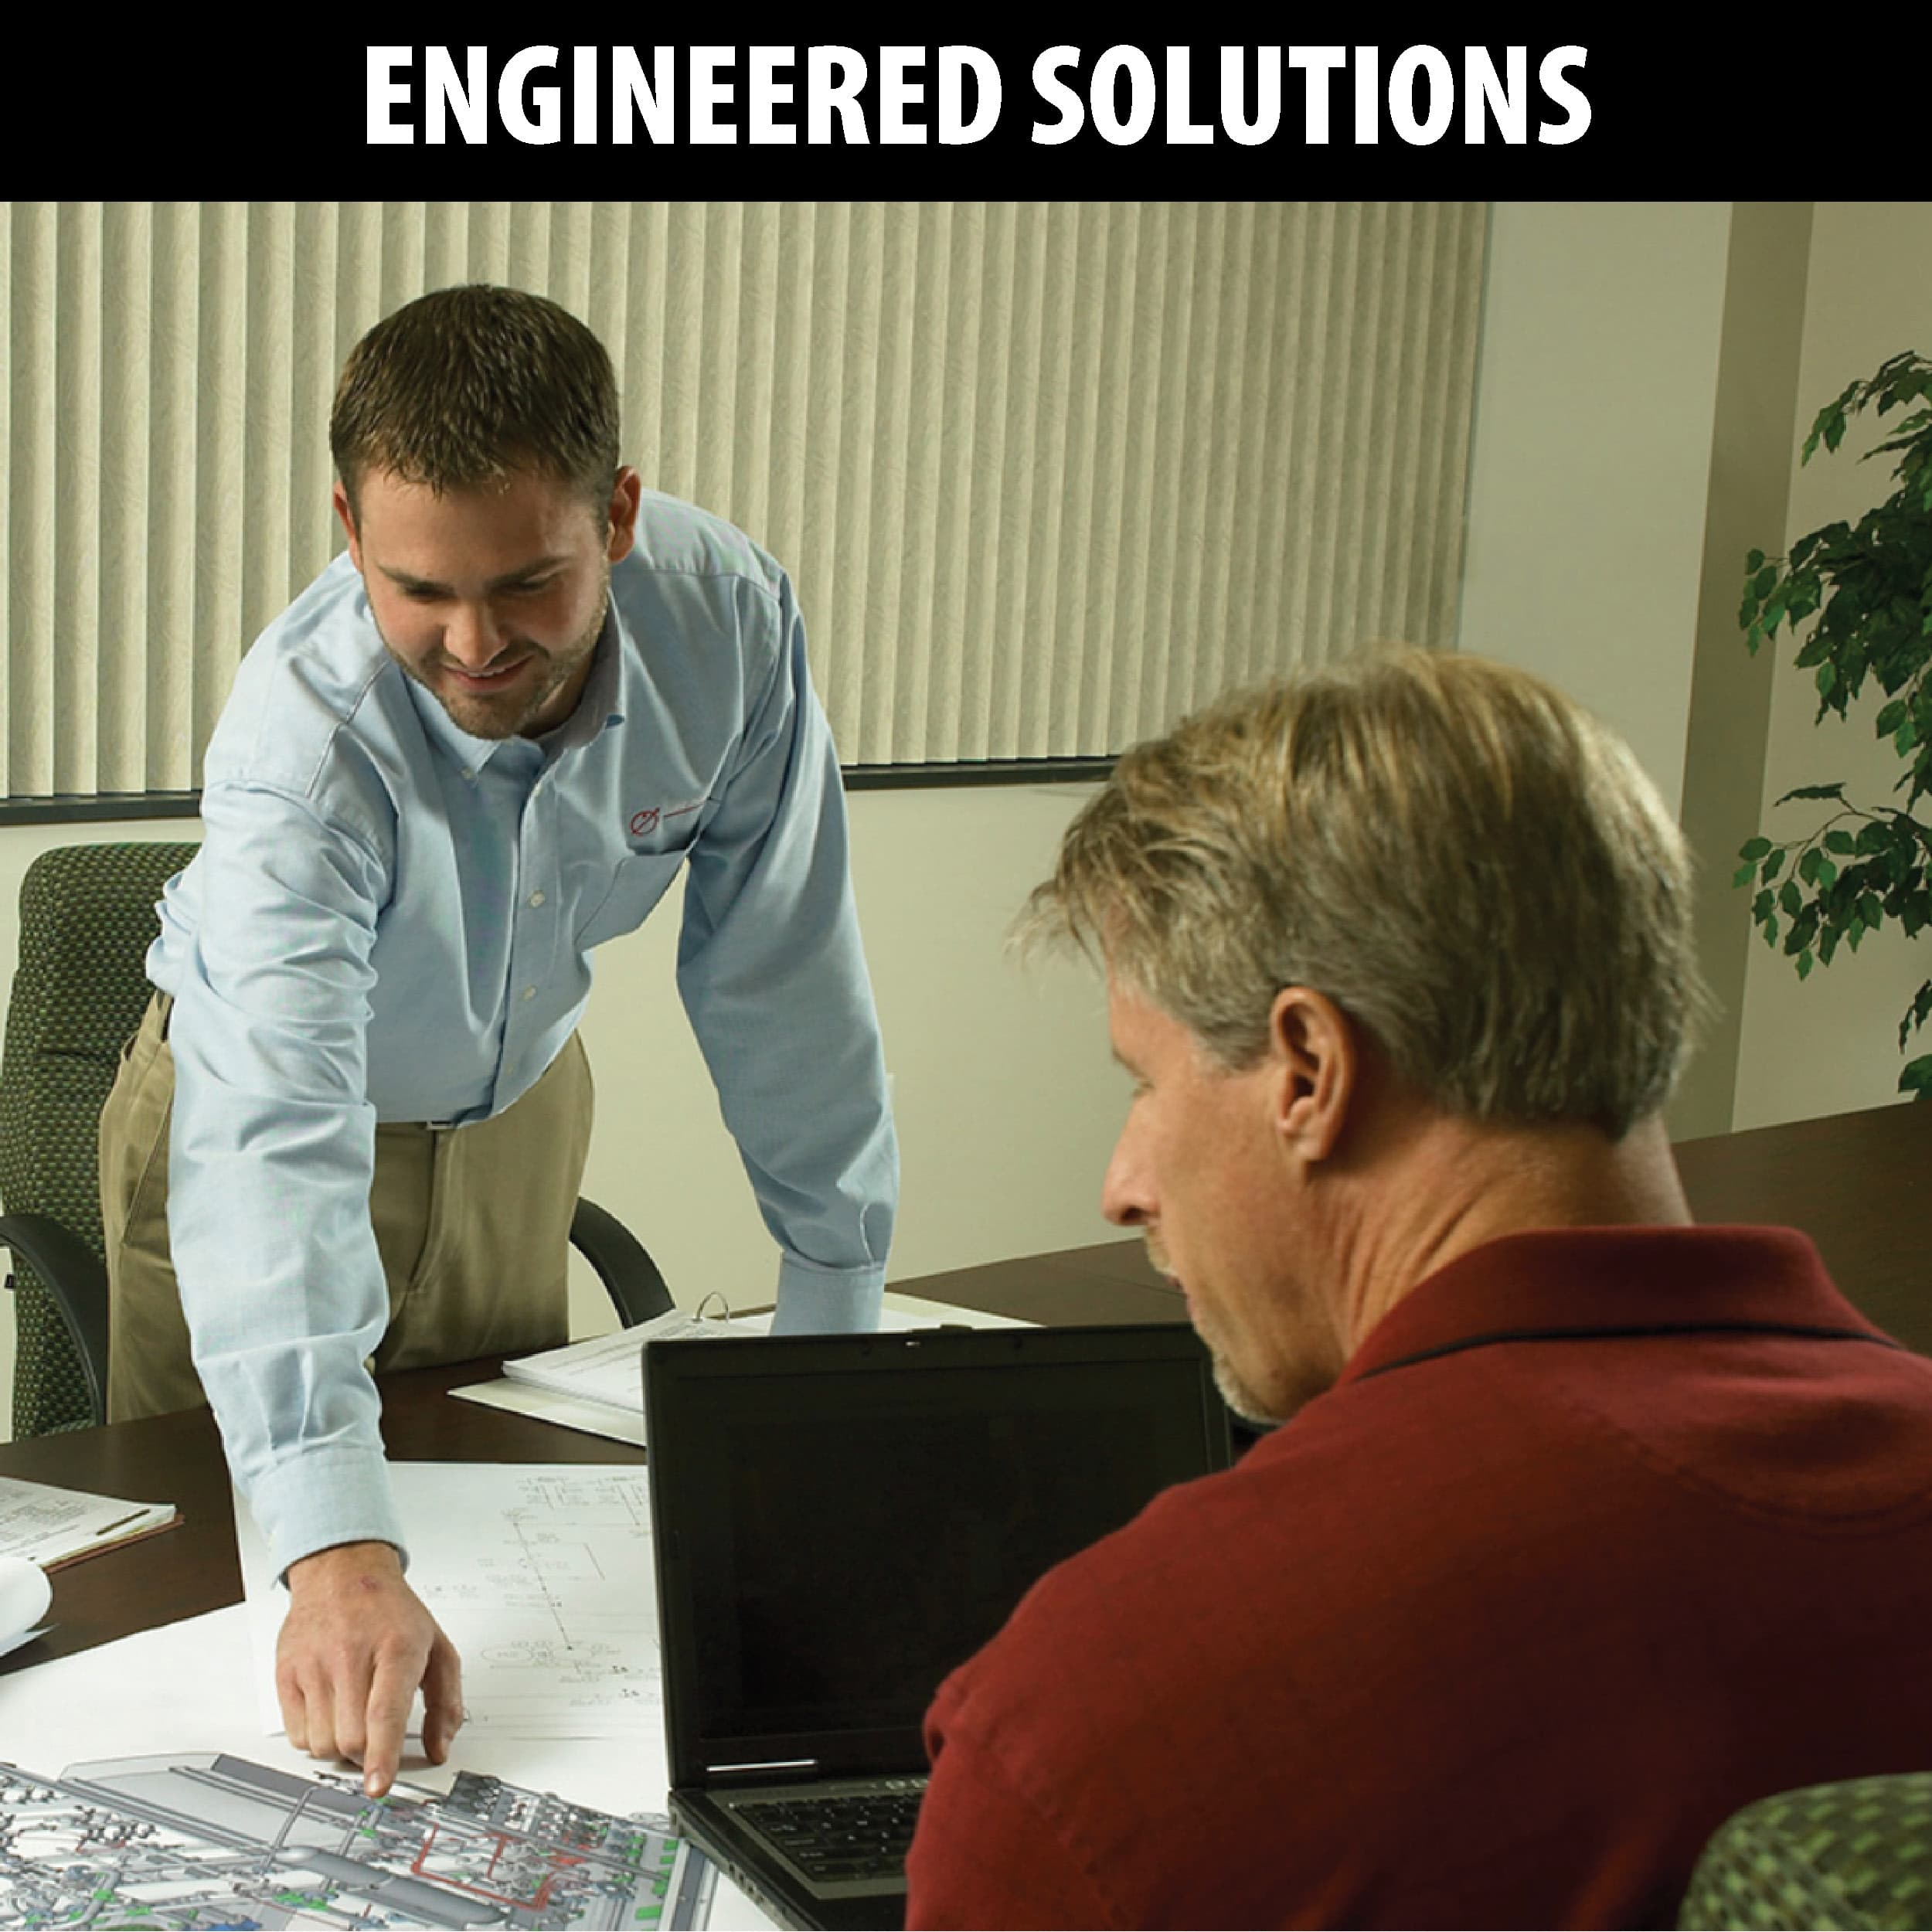 engineered solutions graphic